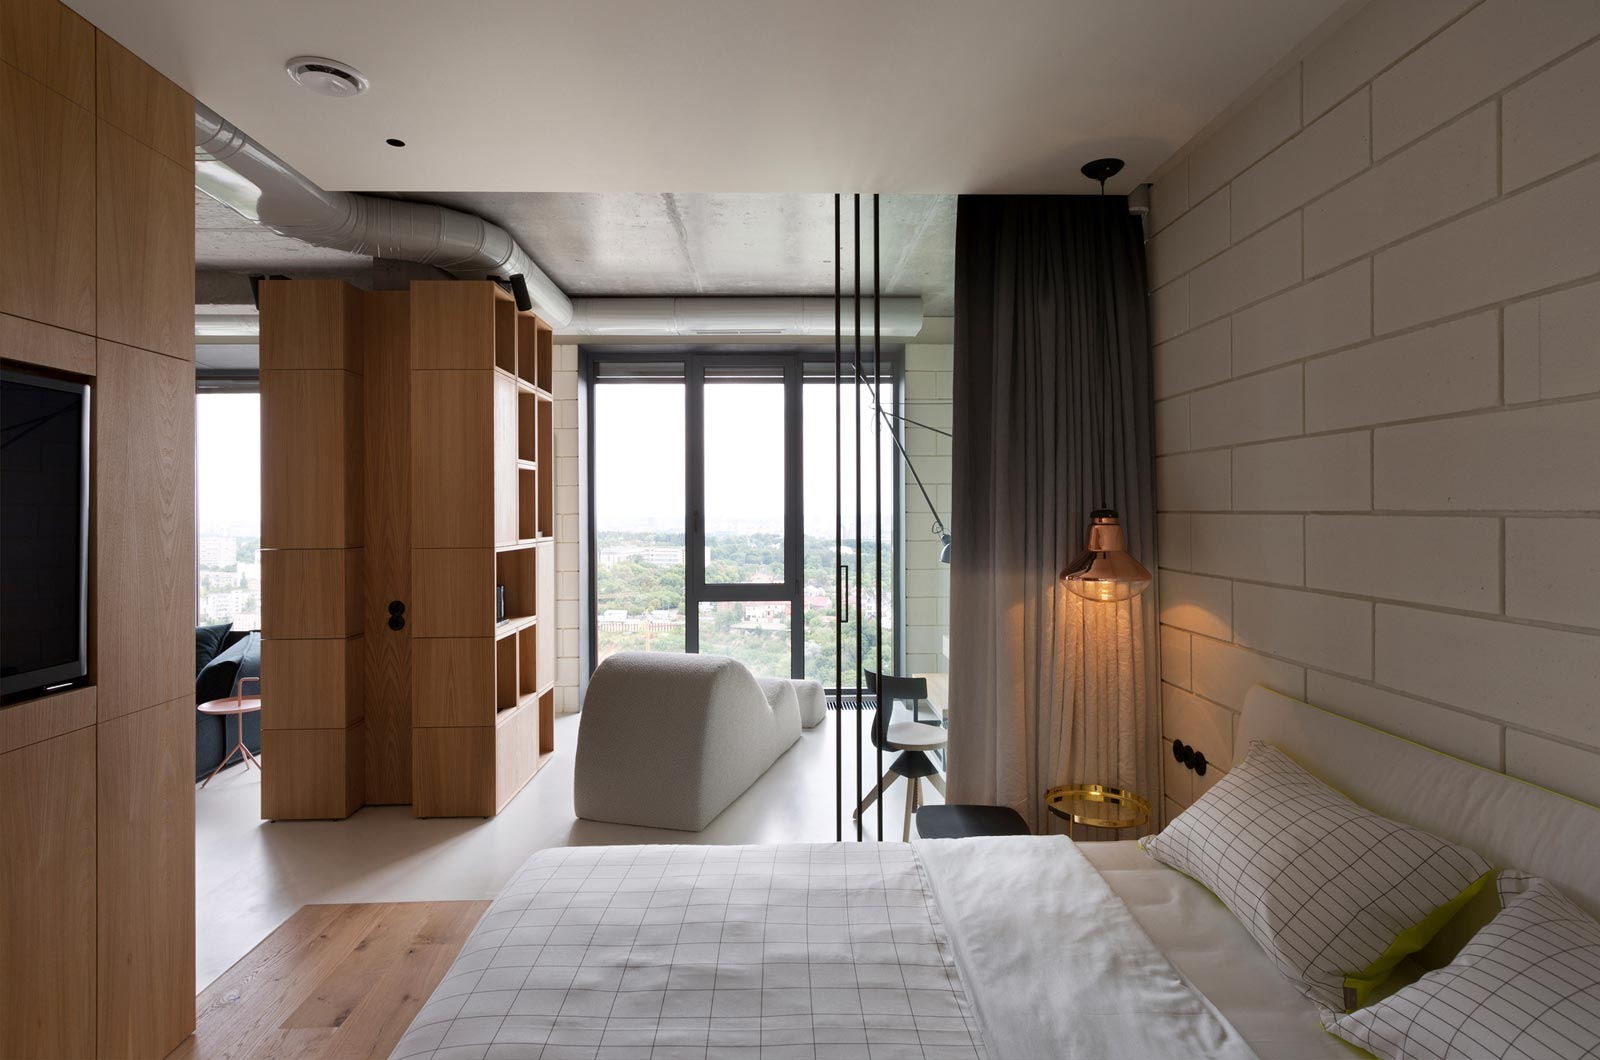 Contemporary bedroom with large windows